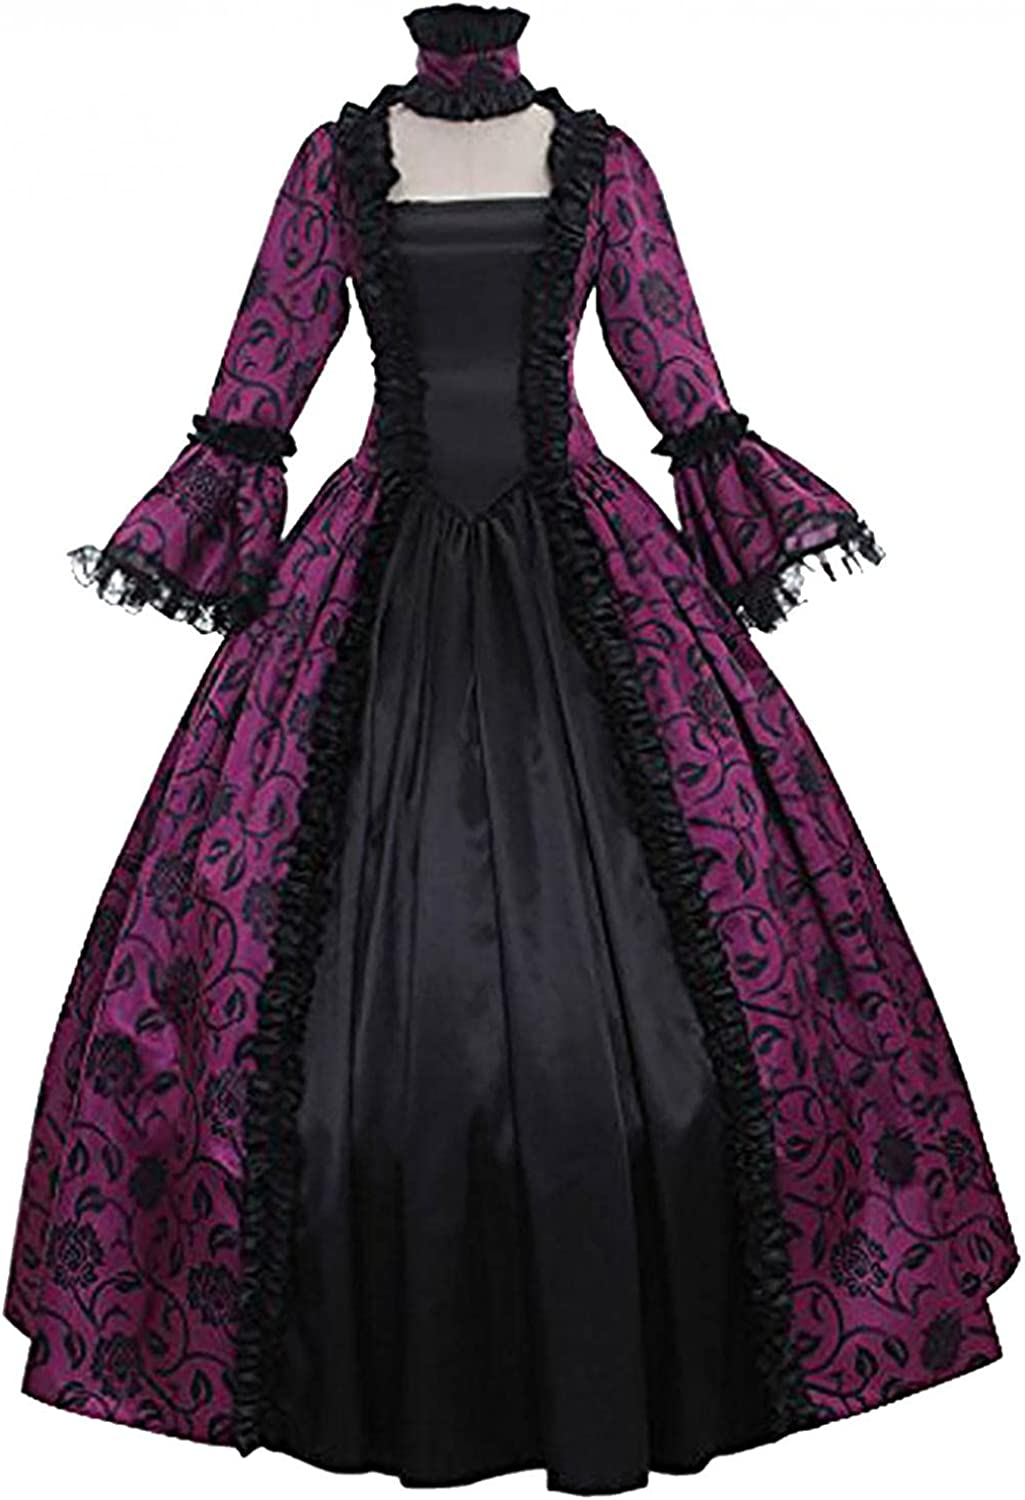 Women's Fort Worth Mall Renaissance Gothic Ball Gown Splicing Retro Floral Lace Portland Mall